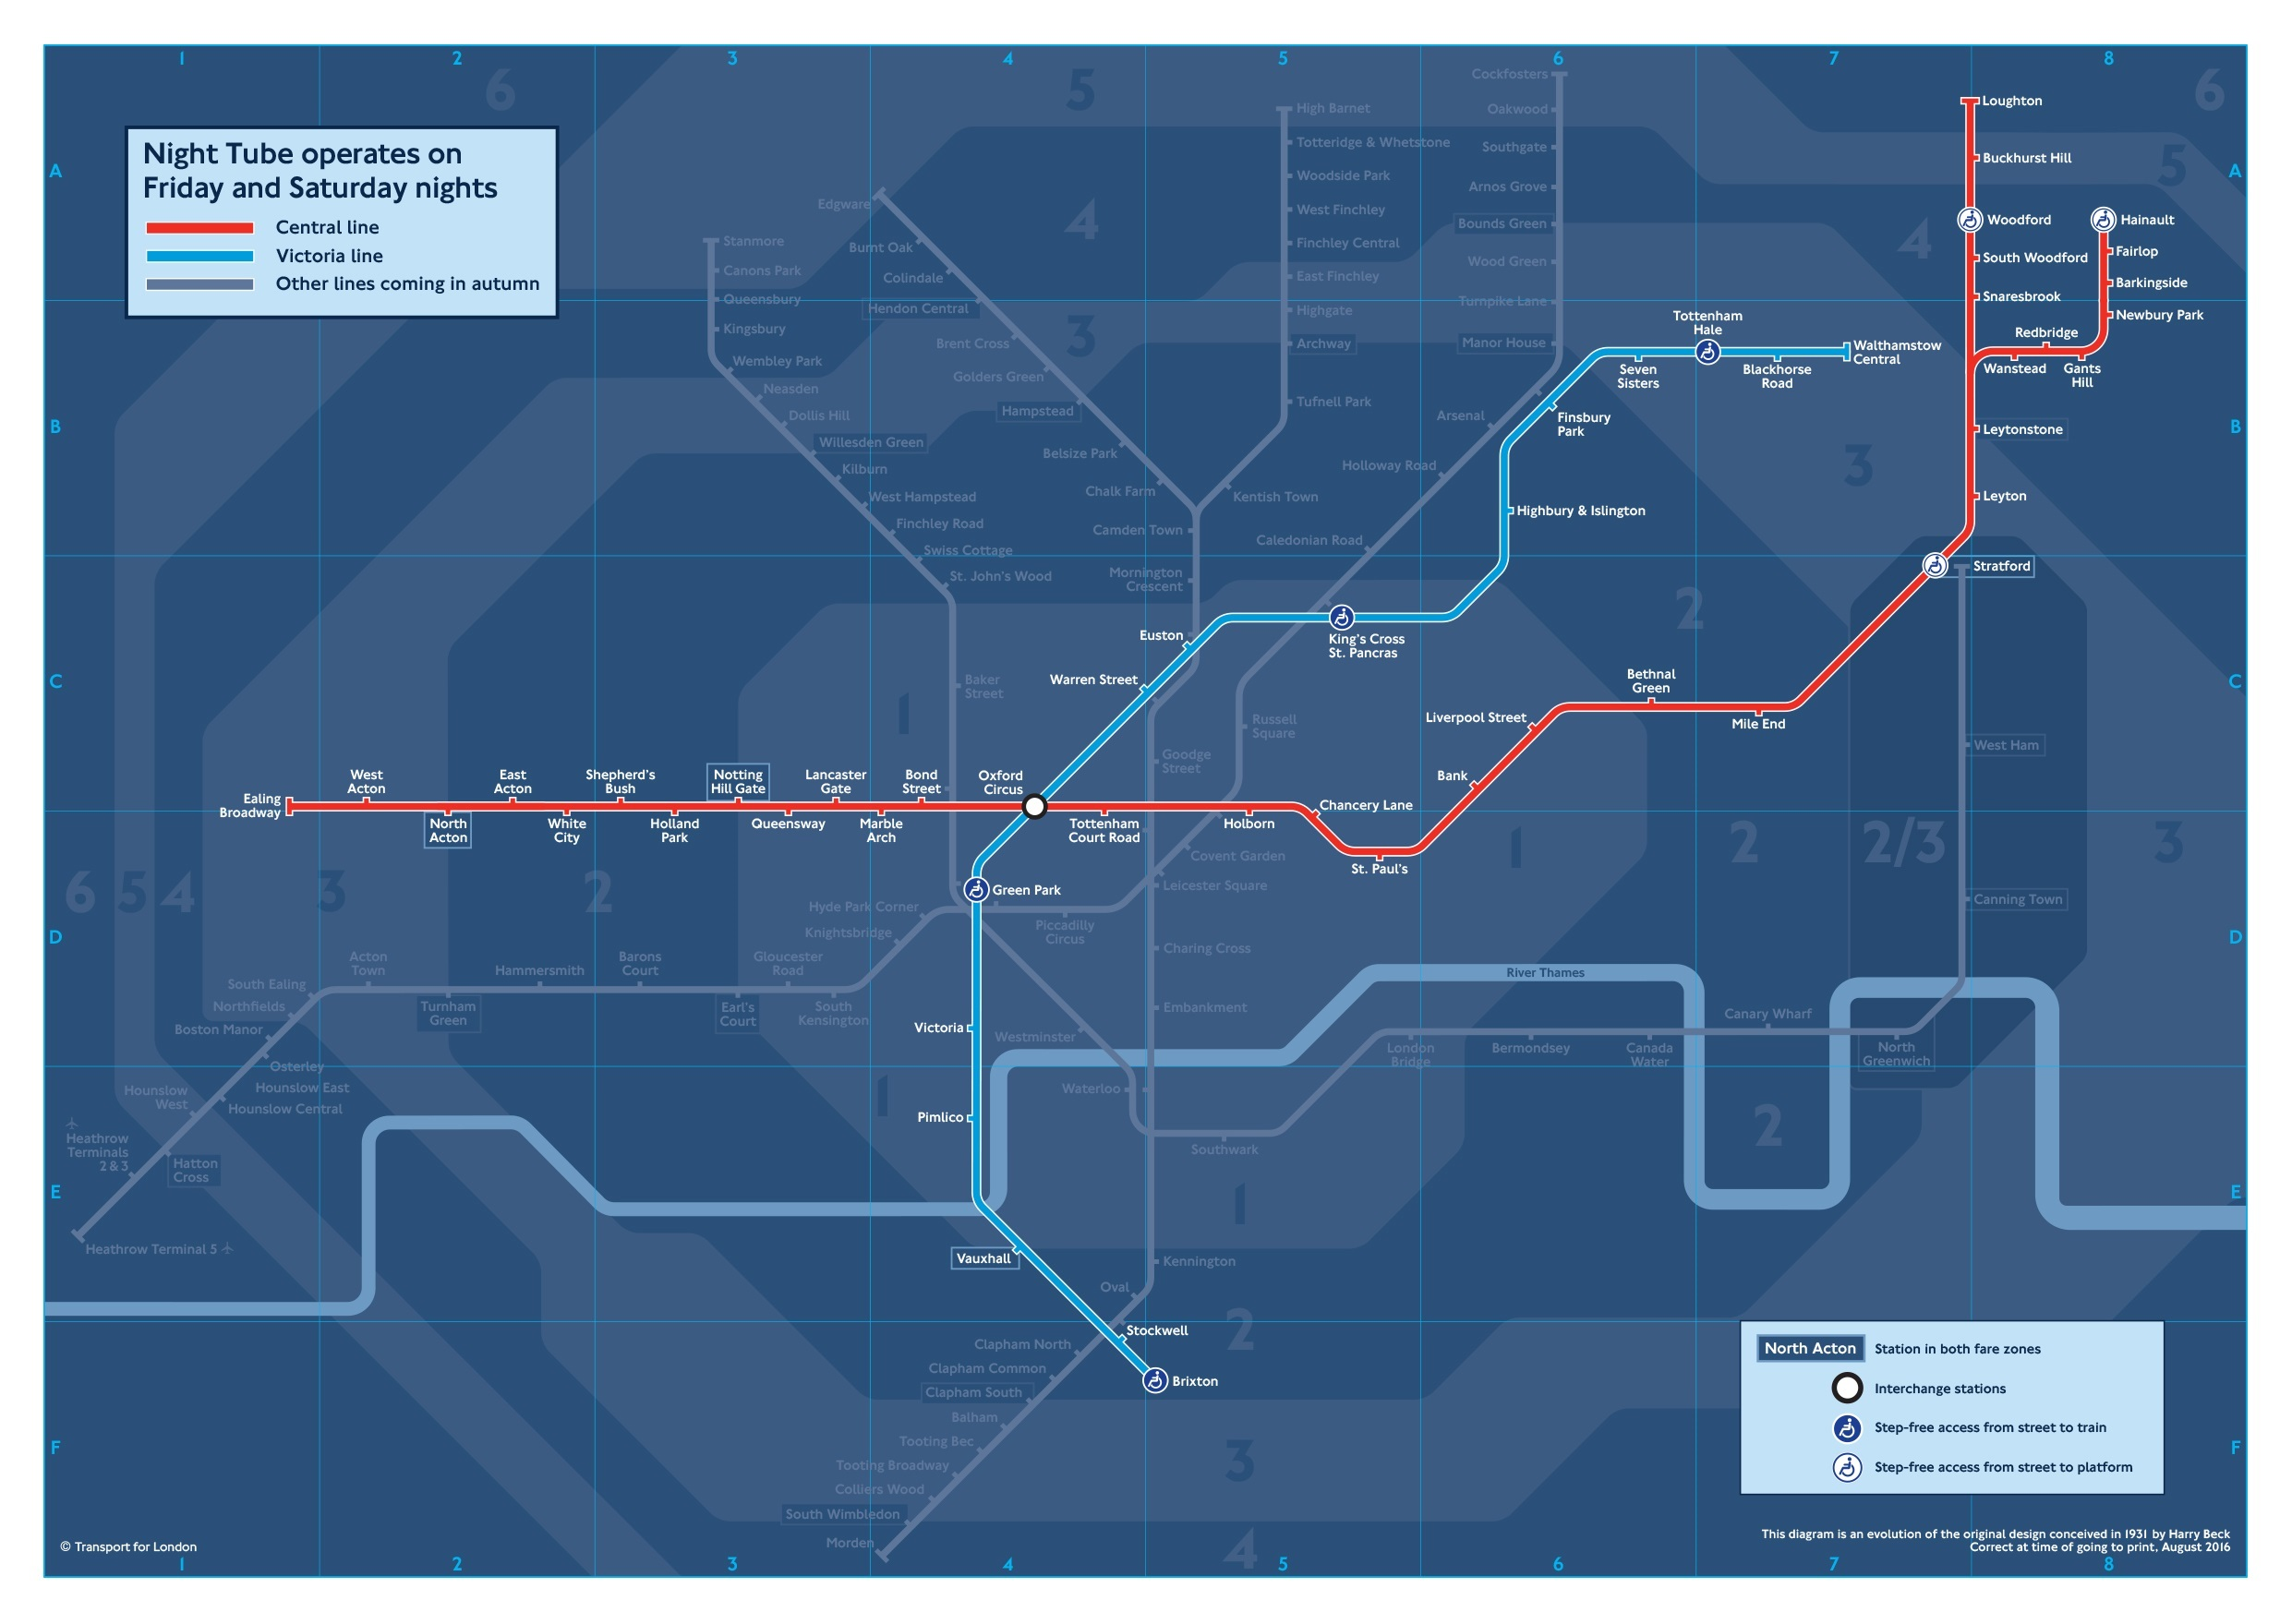 Night Tube Map First Look At The New Night Tube Map | Londonist Night Tube Map